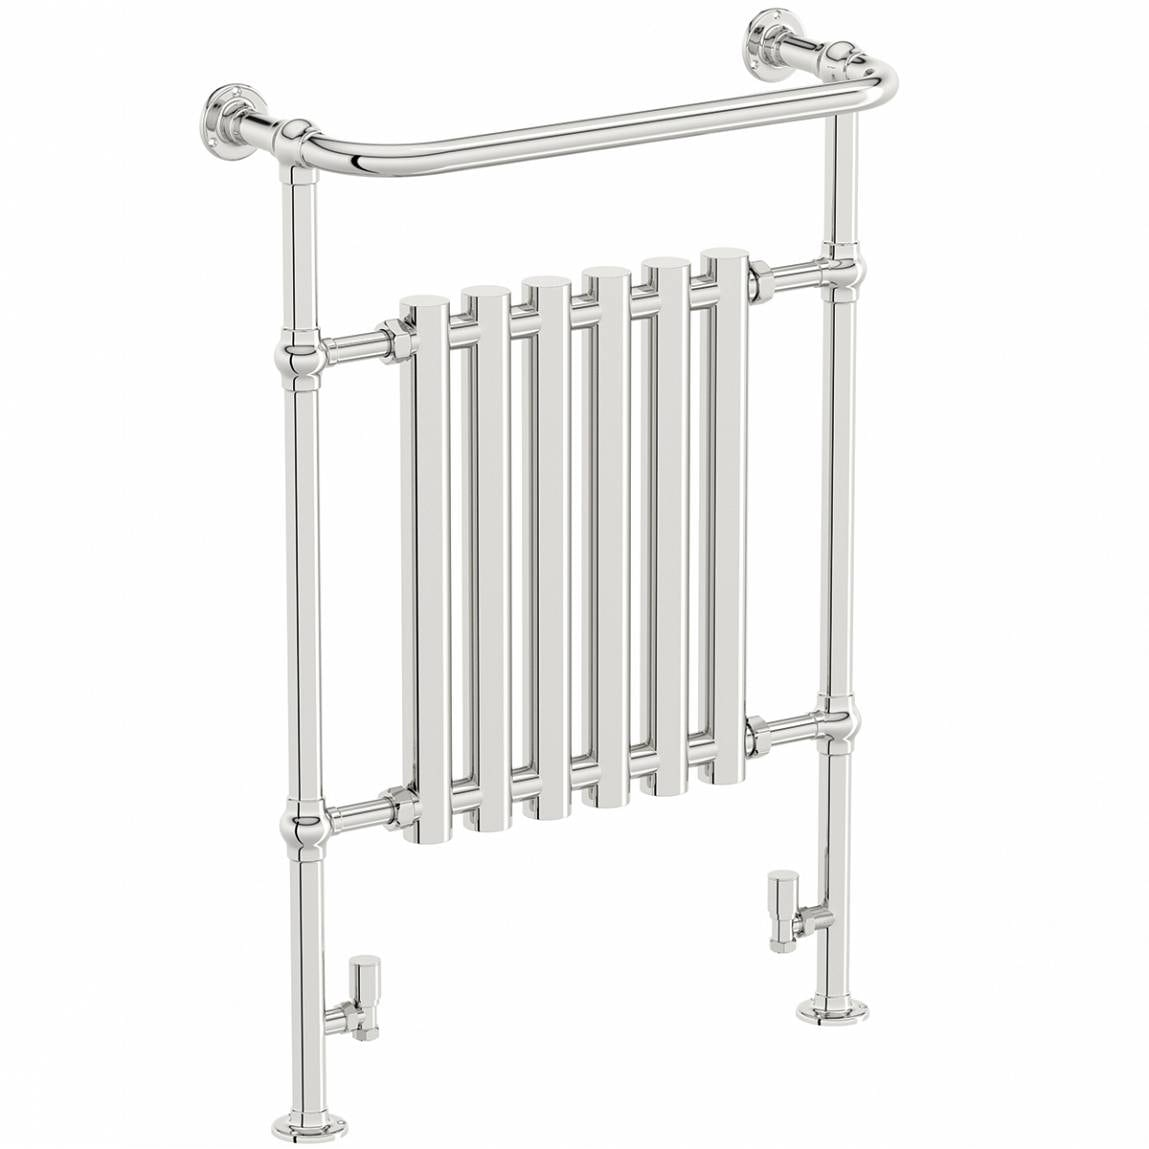 The Bath Co. Camberley radiator 952 x 659